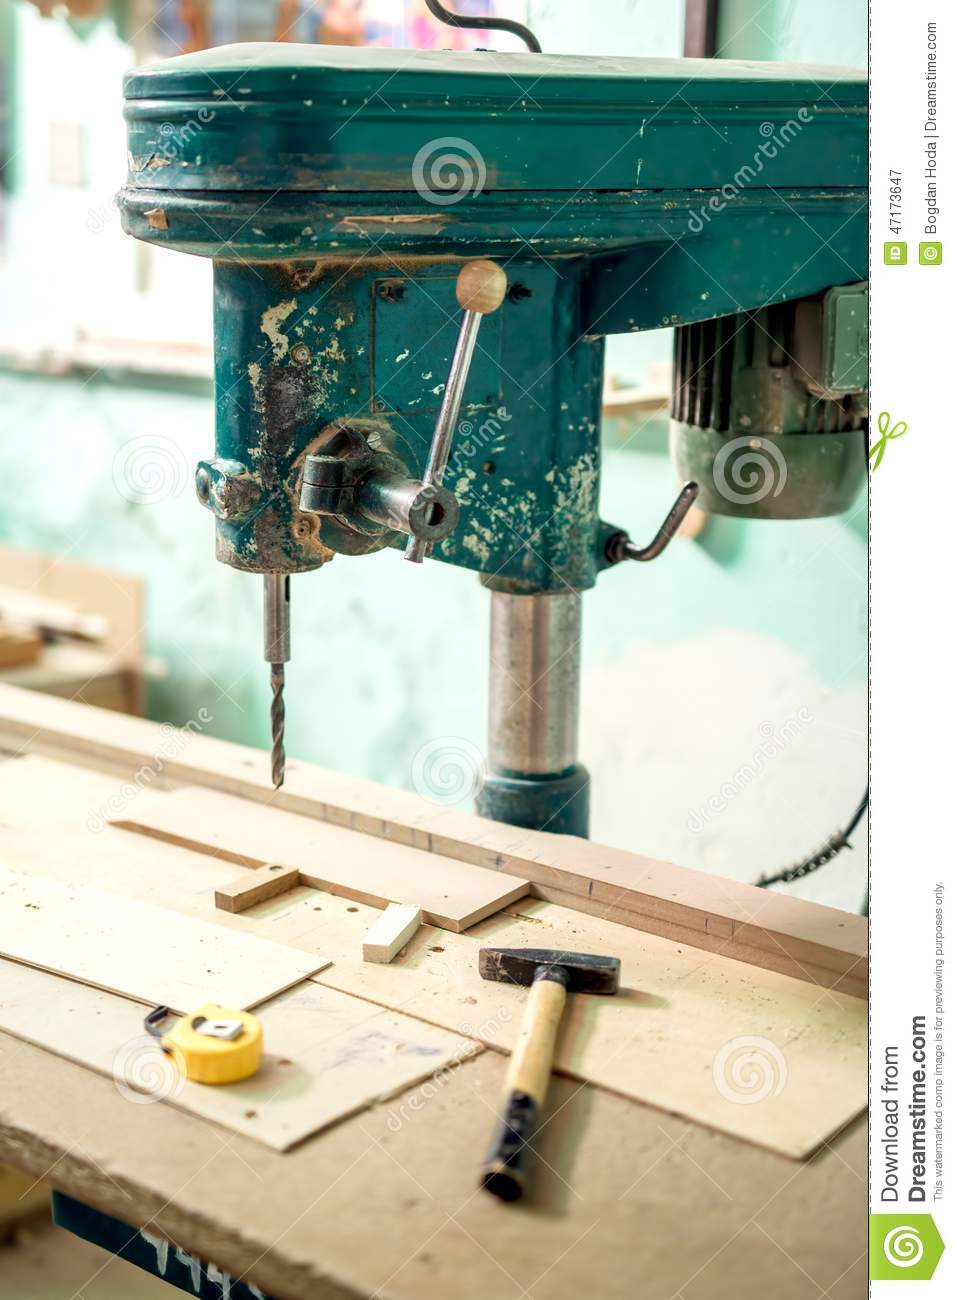 Furniture production plant, factory with industrial drilling and